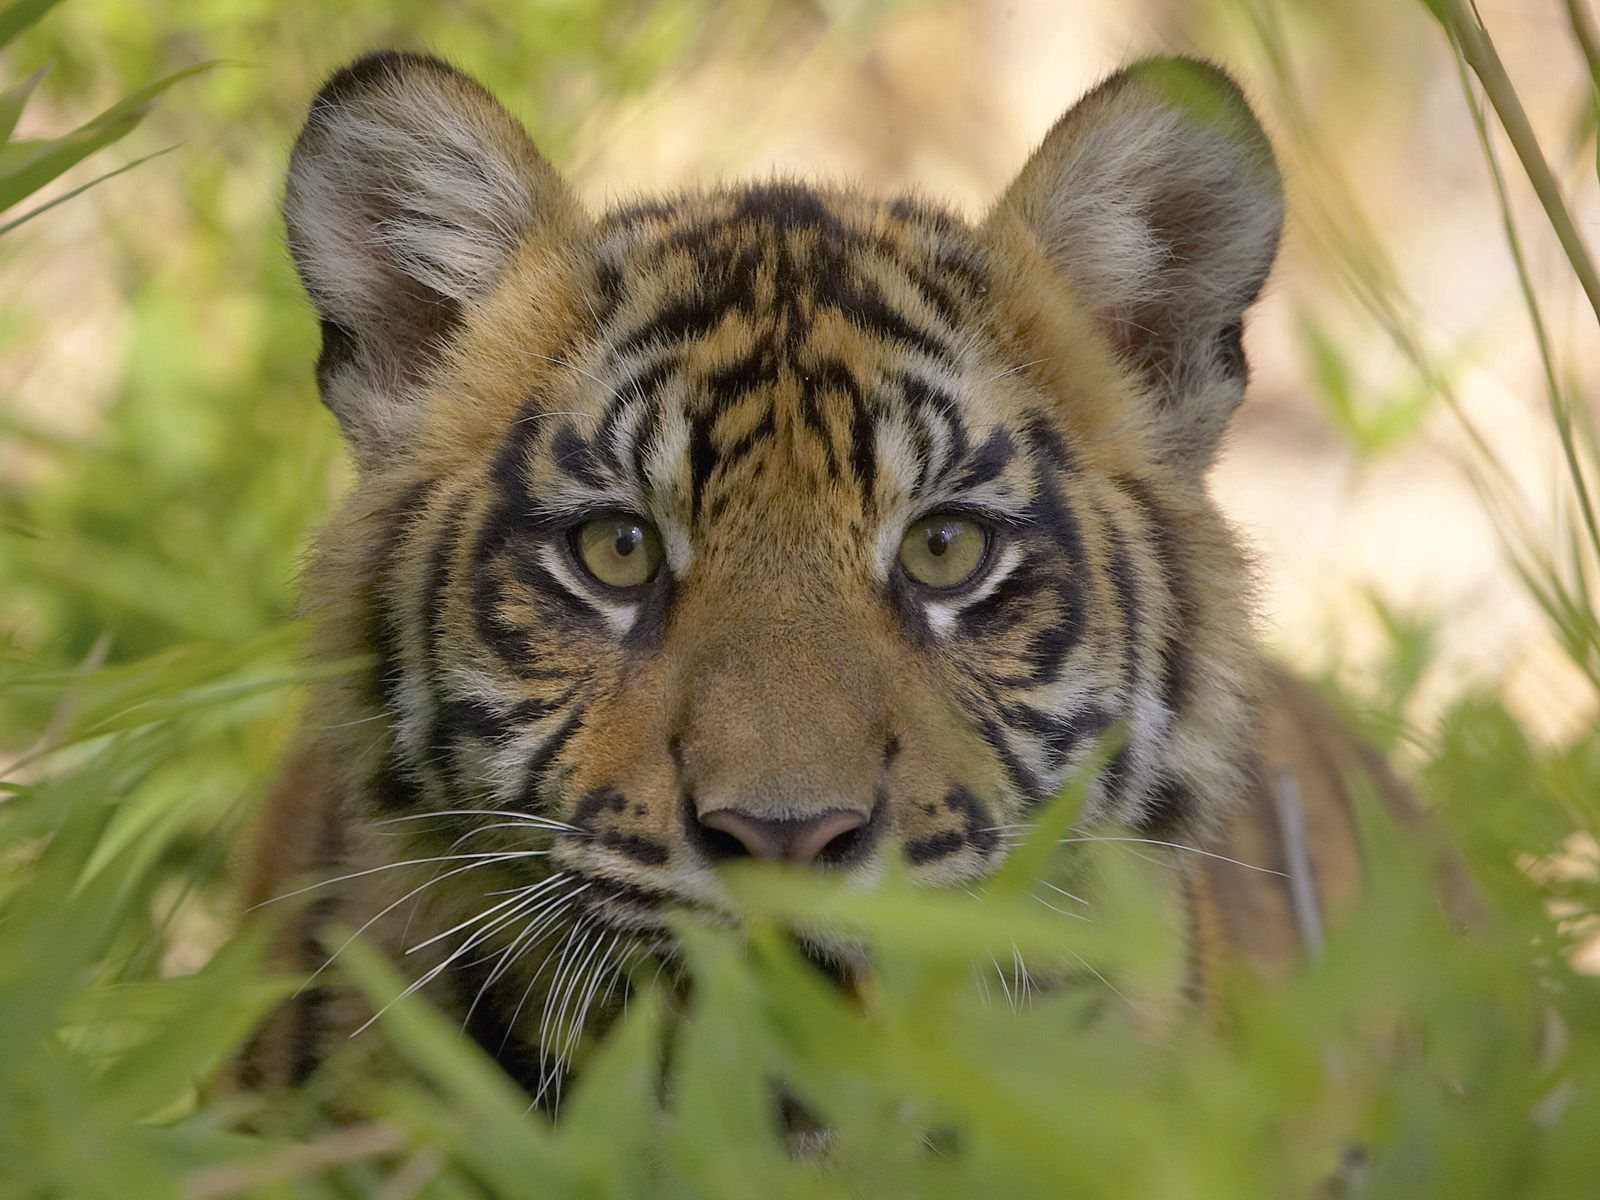 52868 download wallpaper Animals, Tiger, Muzzle, Grass, Predator, Young, Joey screensavers and pictures for free